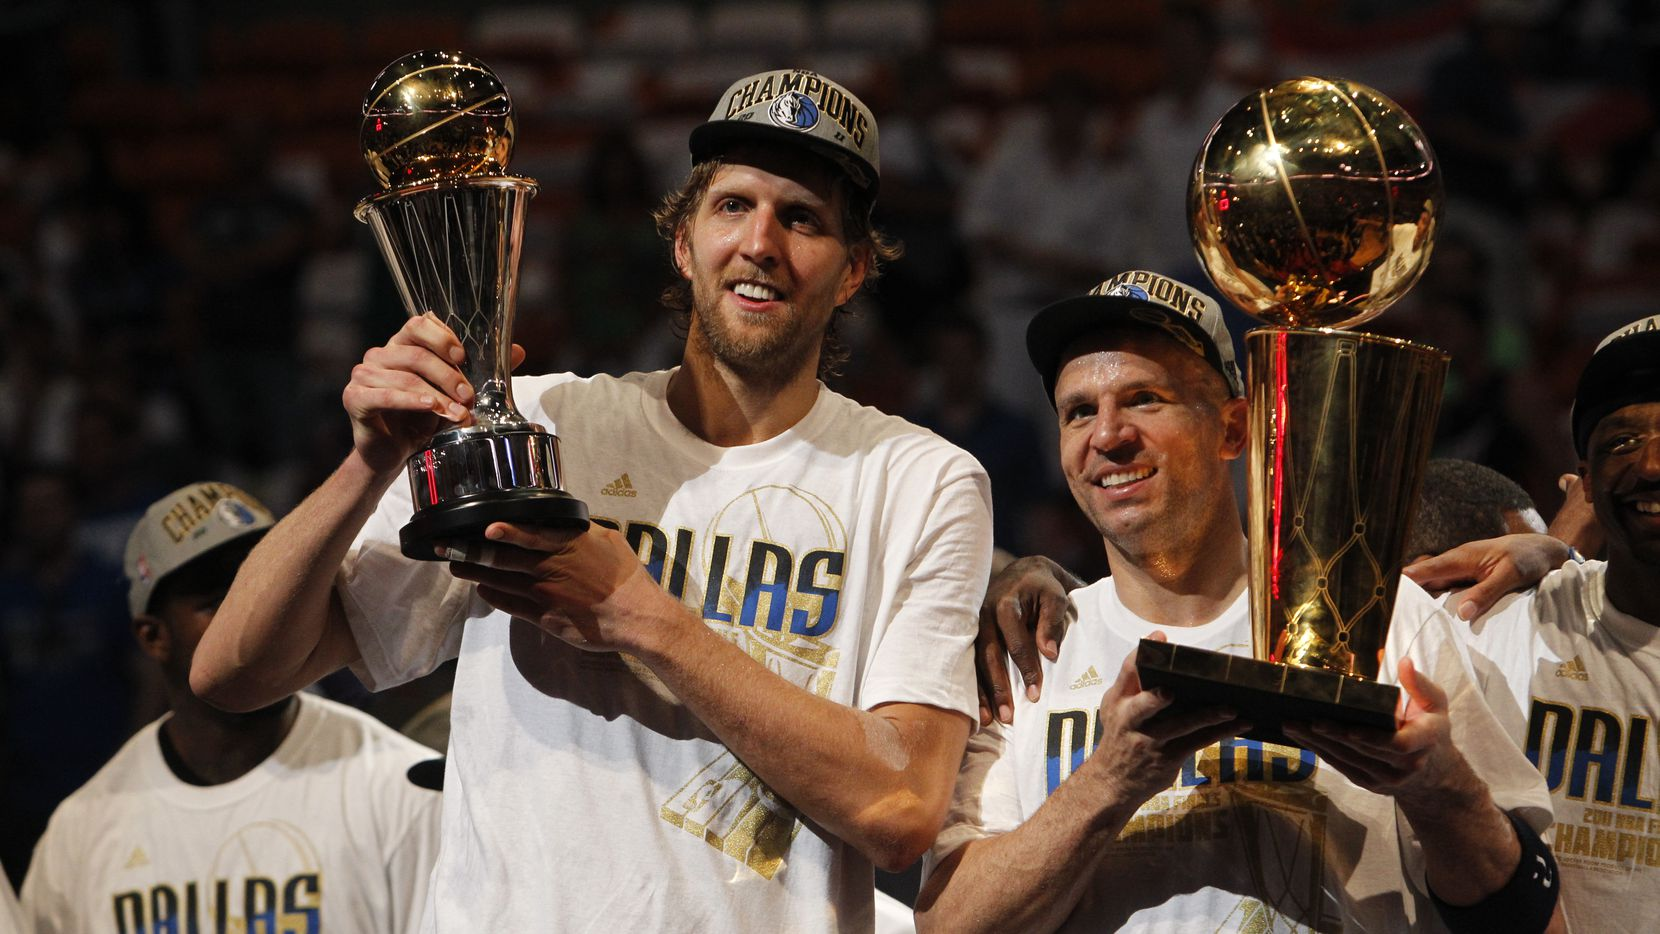 Dallas Mavericks power forward Dirk Nowitzki (41), holding the Bill Russell NBA Finals MVP trophy, and Dallas Mavericks point guard Jason Kidd (2) with the Larry O'Brien NBA Championship Trophy pose on the podium after winning the NBA Finals at American Airlines Arena Sunday, June 12, 2011 in Miami. Mavs won 105-95.